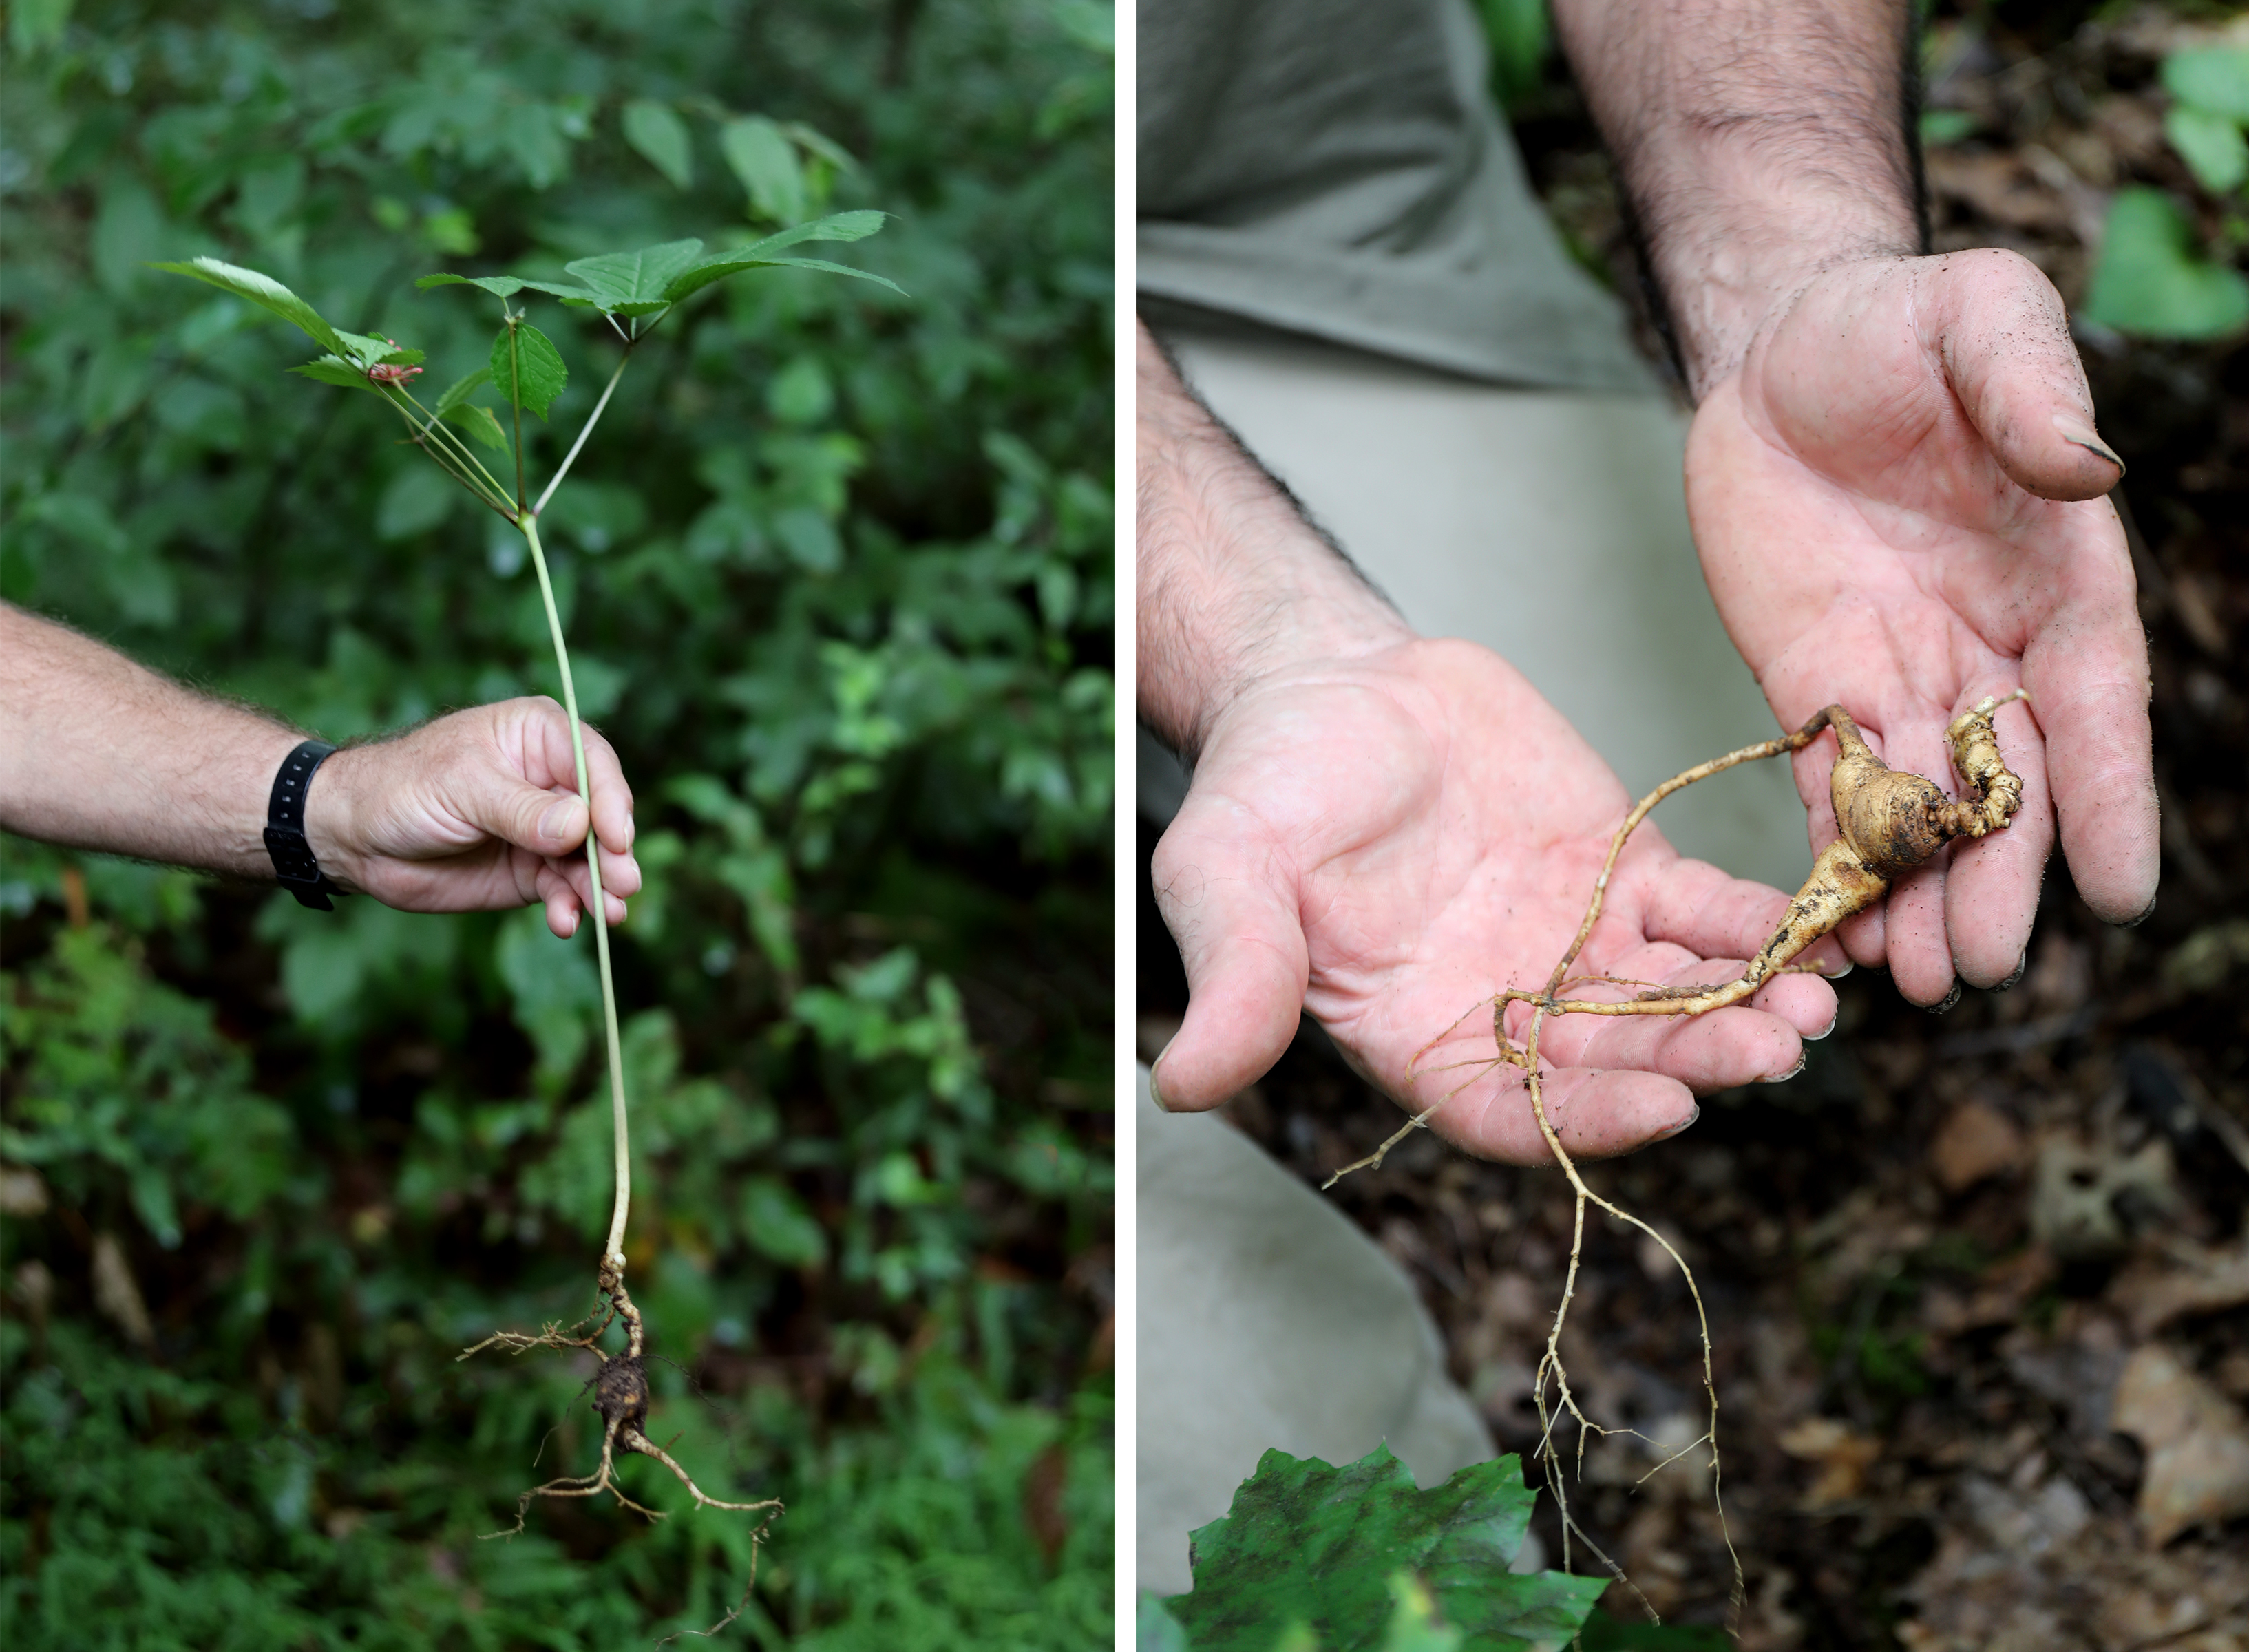 Freshly harvested ginseng plants and roots. Detailed photographs to give a scale of the plant and root size.